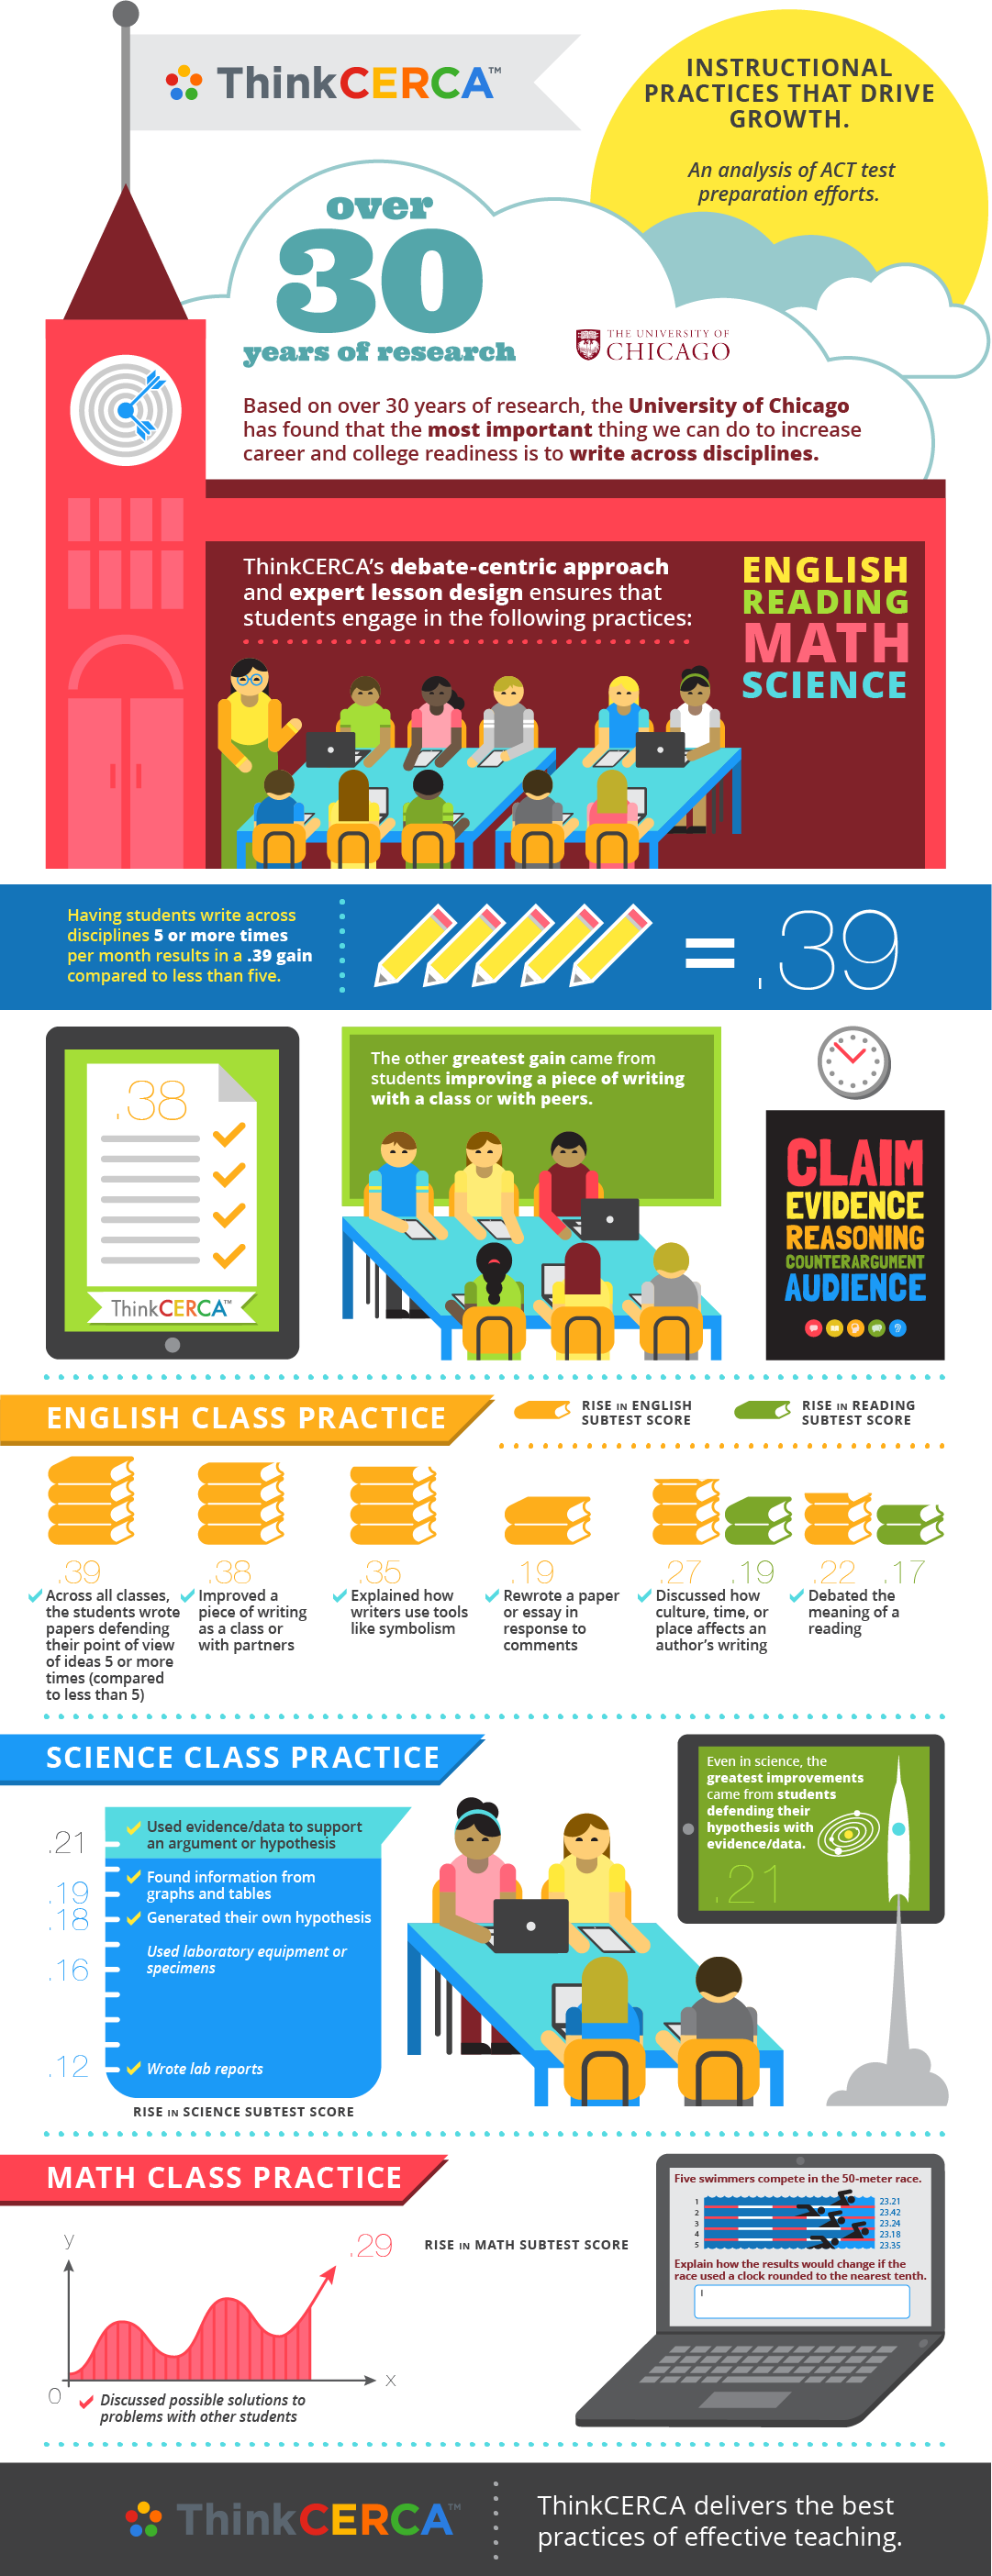 ThinkCERCA_infographic_FN_02.19.14